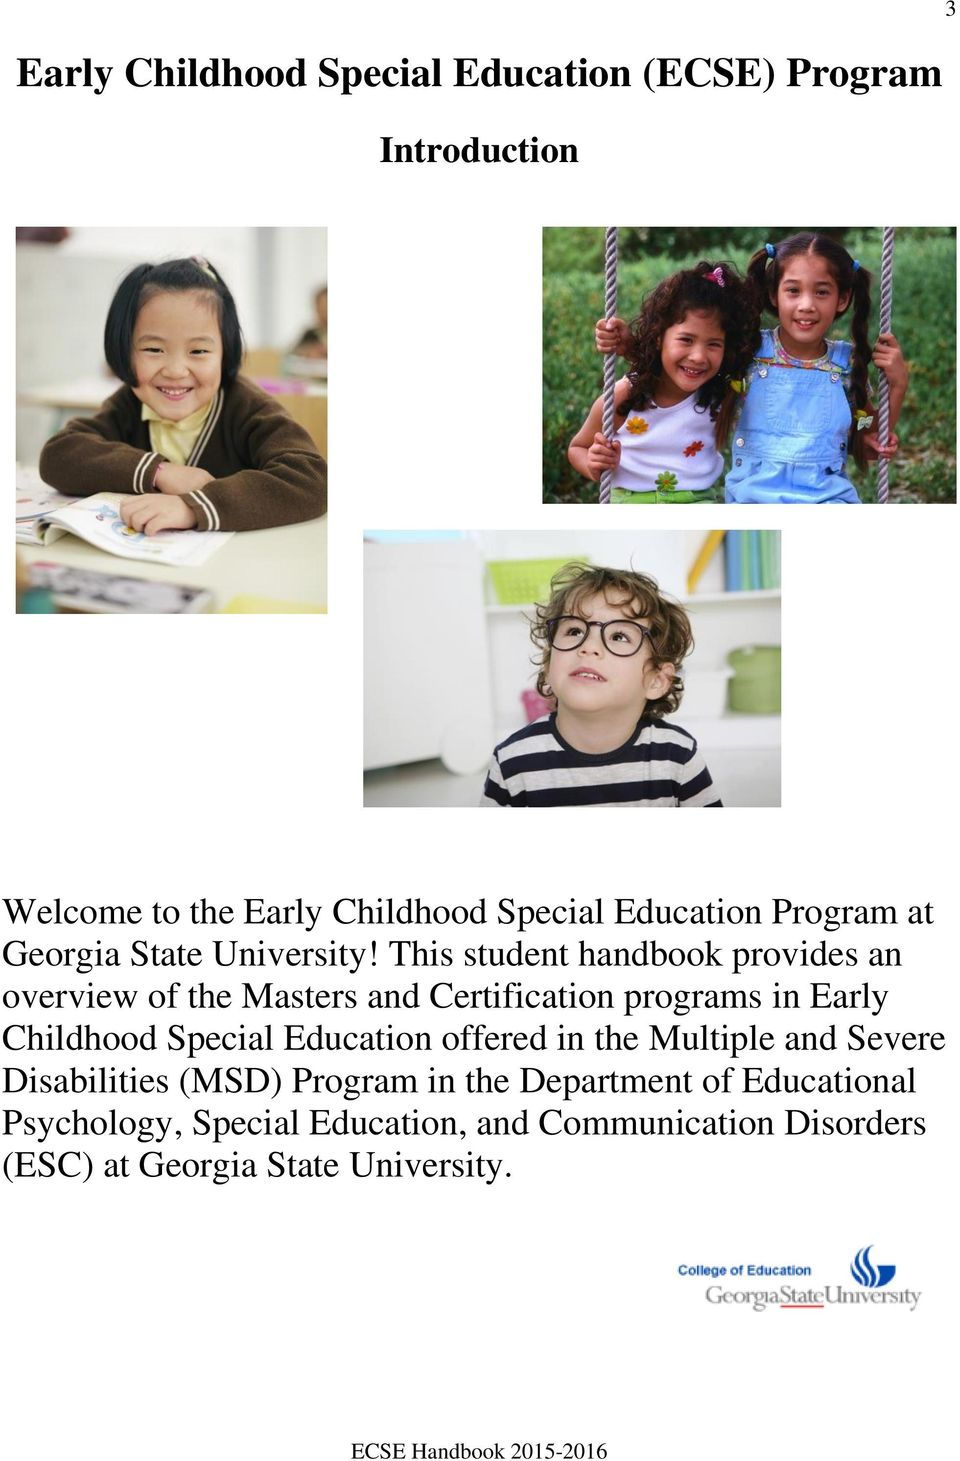 This student handbook provides an overview of the Masters and Certification programs in Early Childhood Special